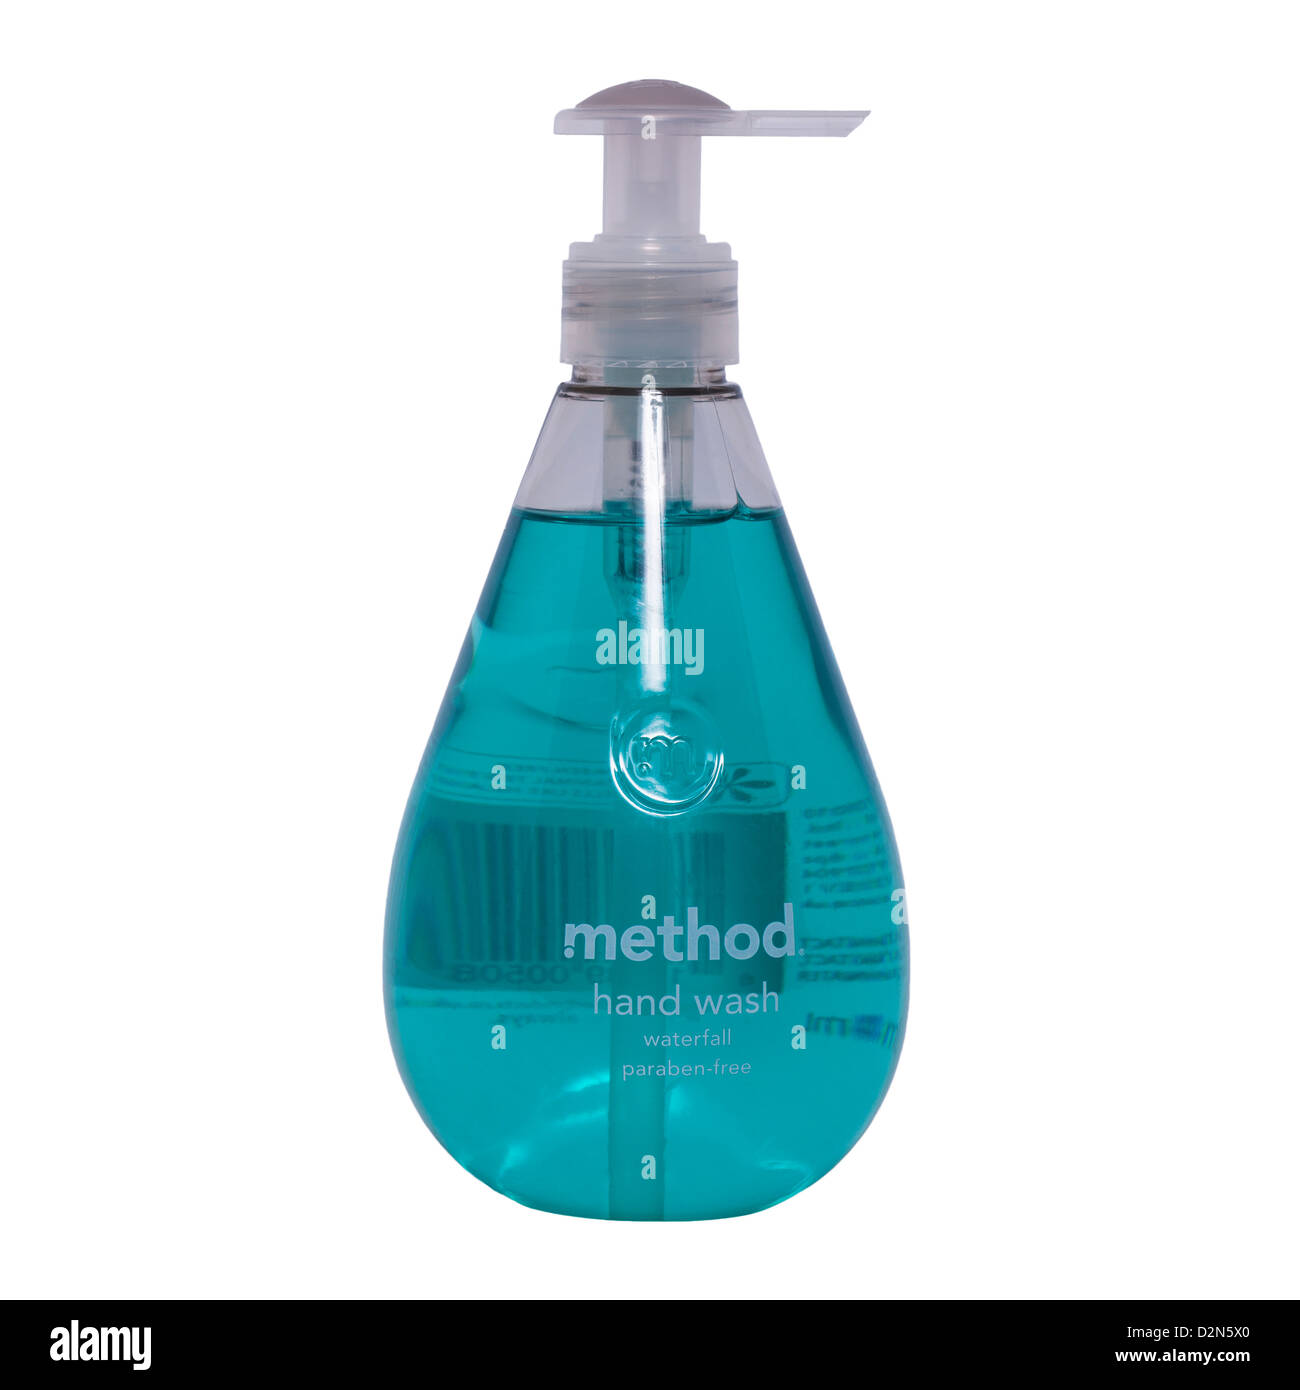 A bottle of method hand wash on a white background - Stock Image